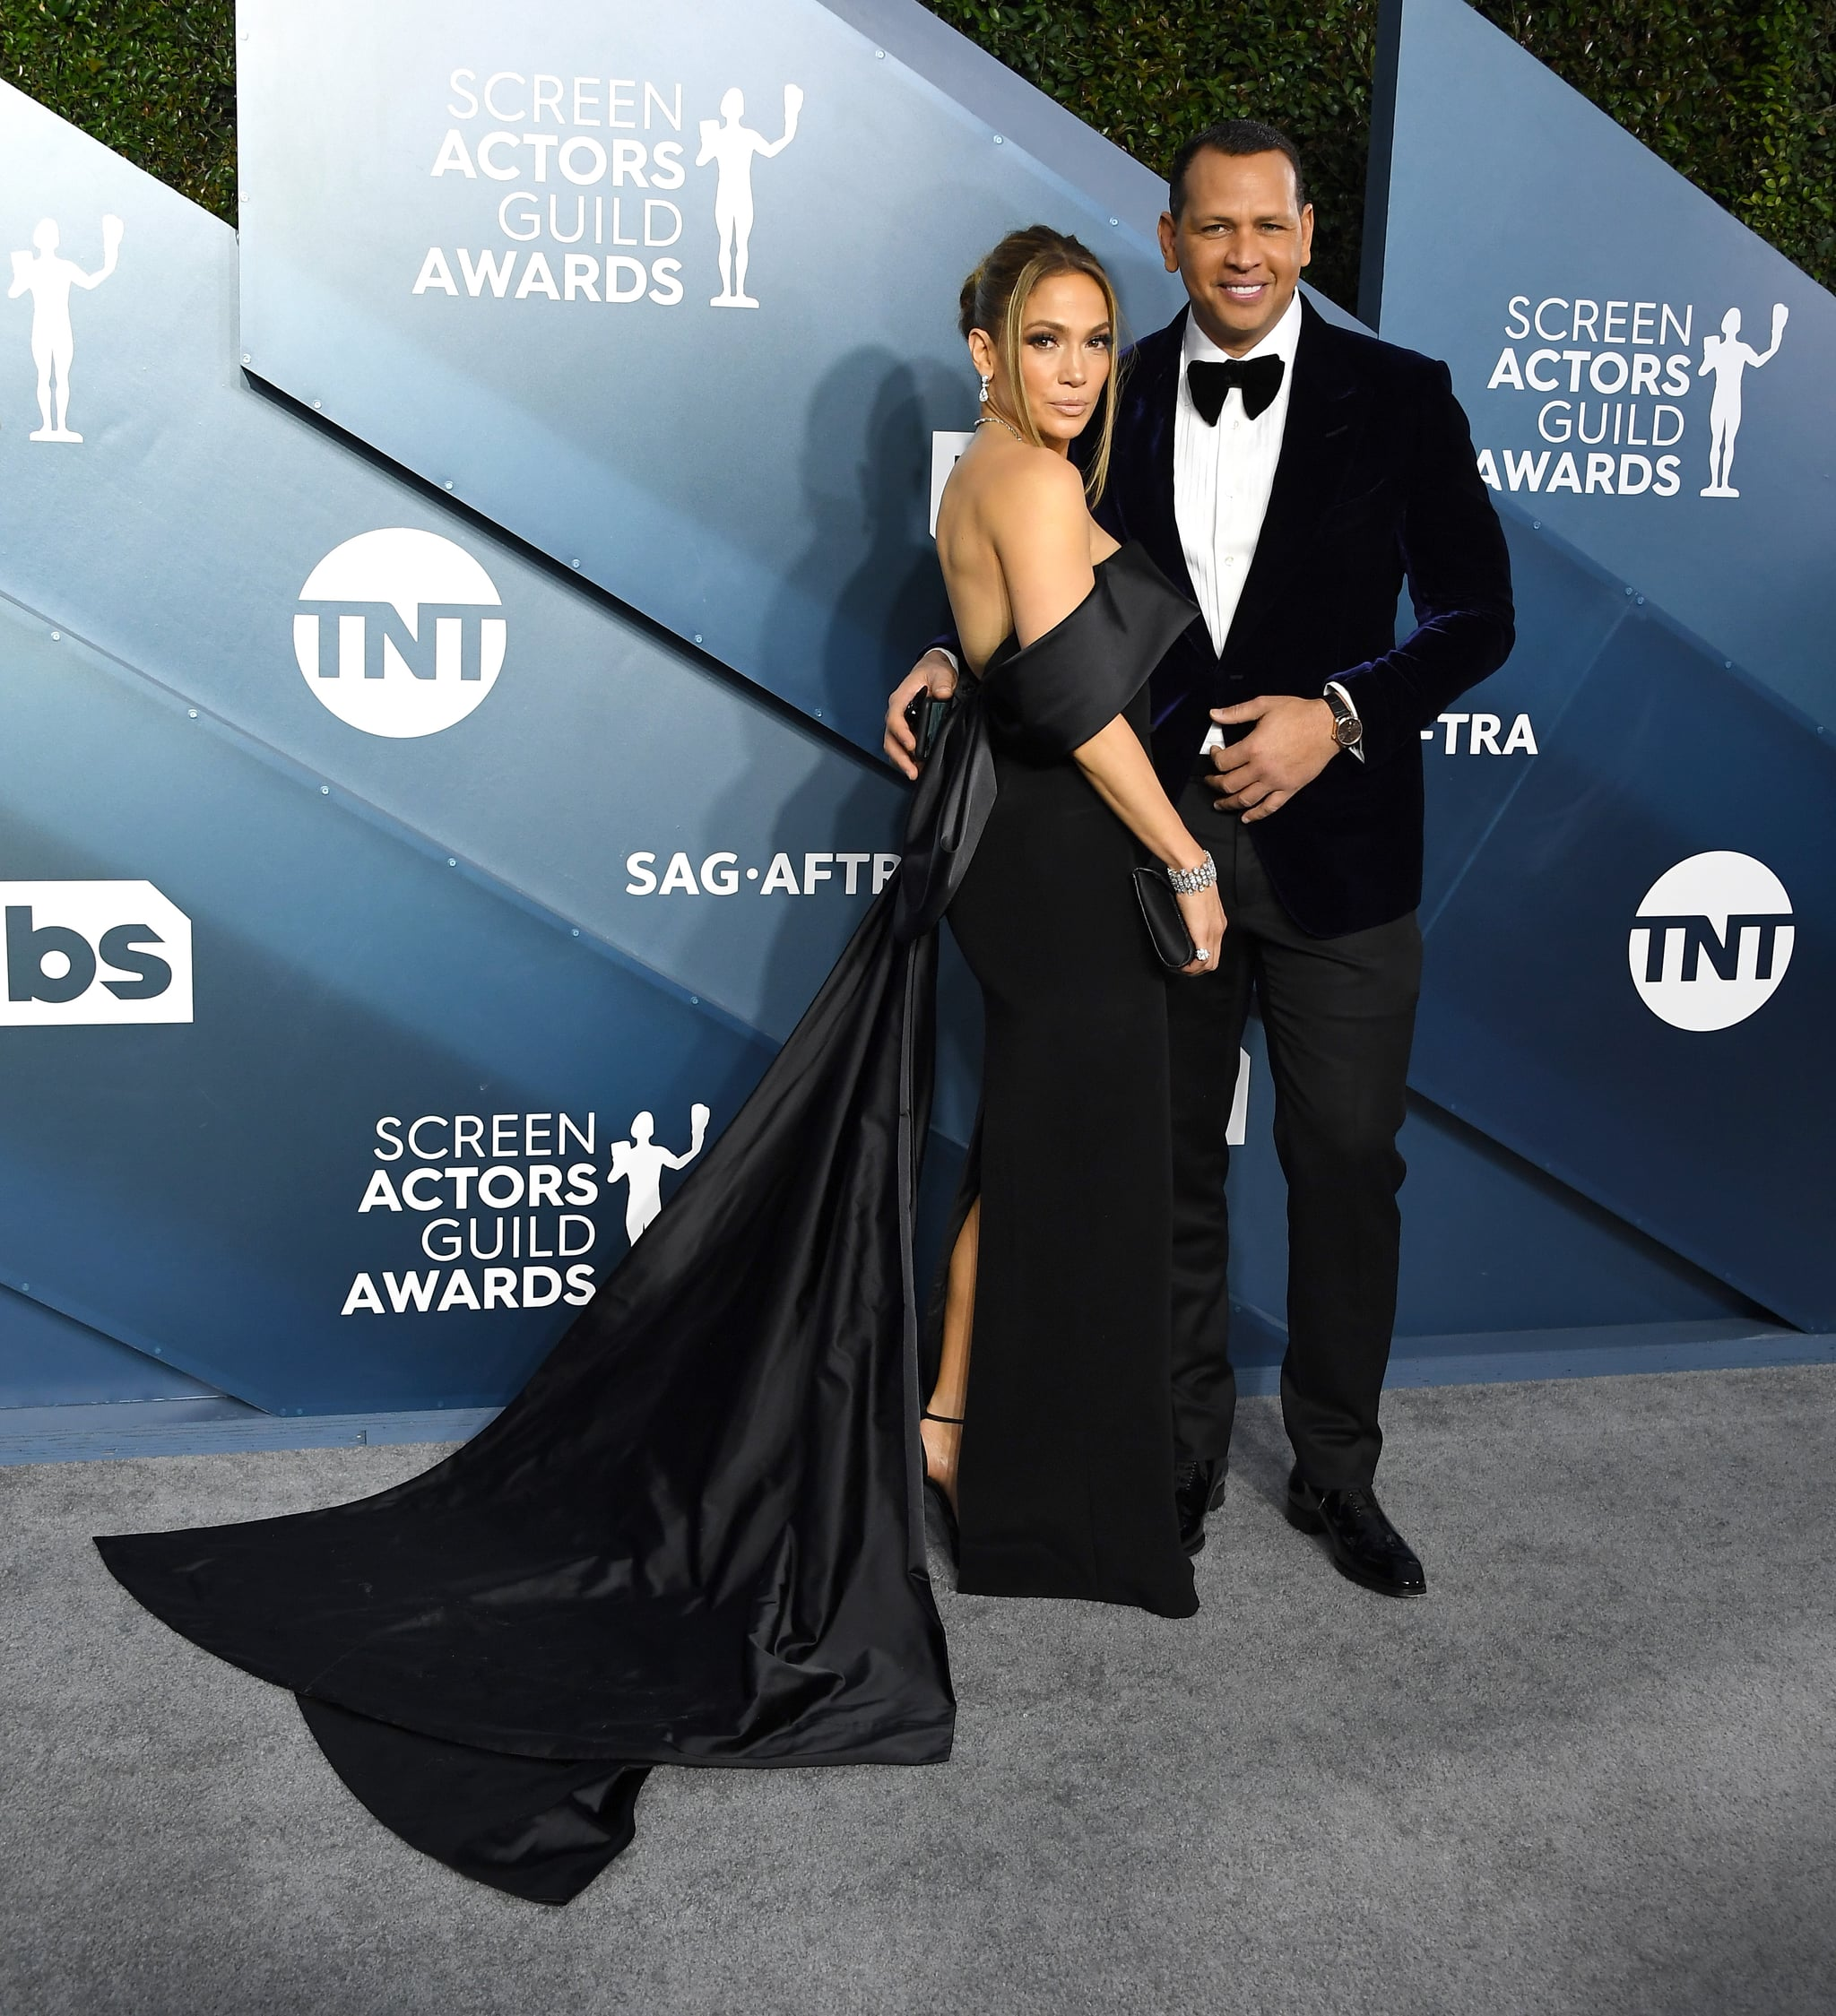 LOS ANGELES, CALIFORNIA - JANUARY 19: Jennifer Lopez and Alex Rodriguez arrives at the 26th Annual Screen Actors Guild Awards at The Shrine Auditorium on January 19, 2020 in Los Angeles, California. (Photo by Steve Granitz/WireImage)